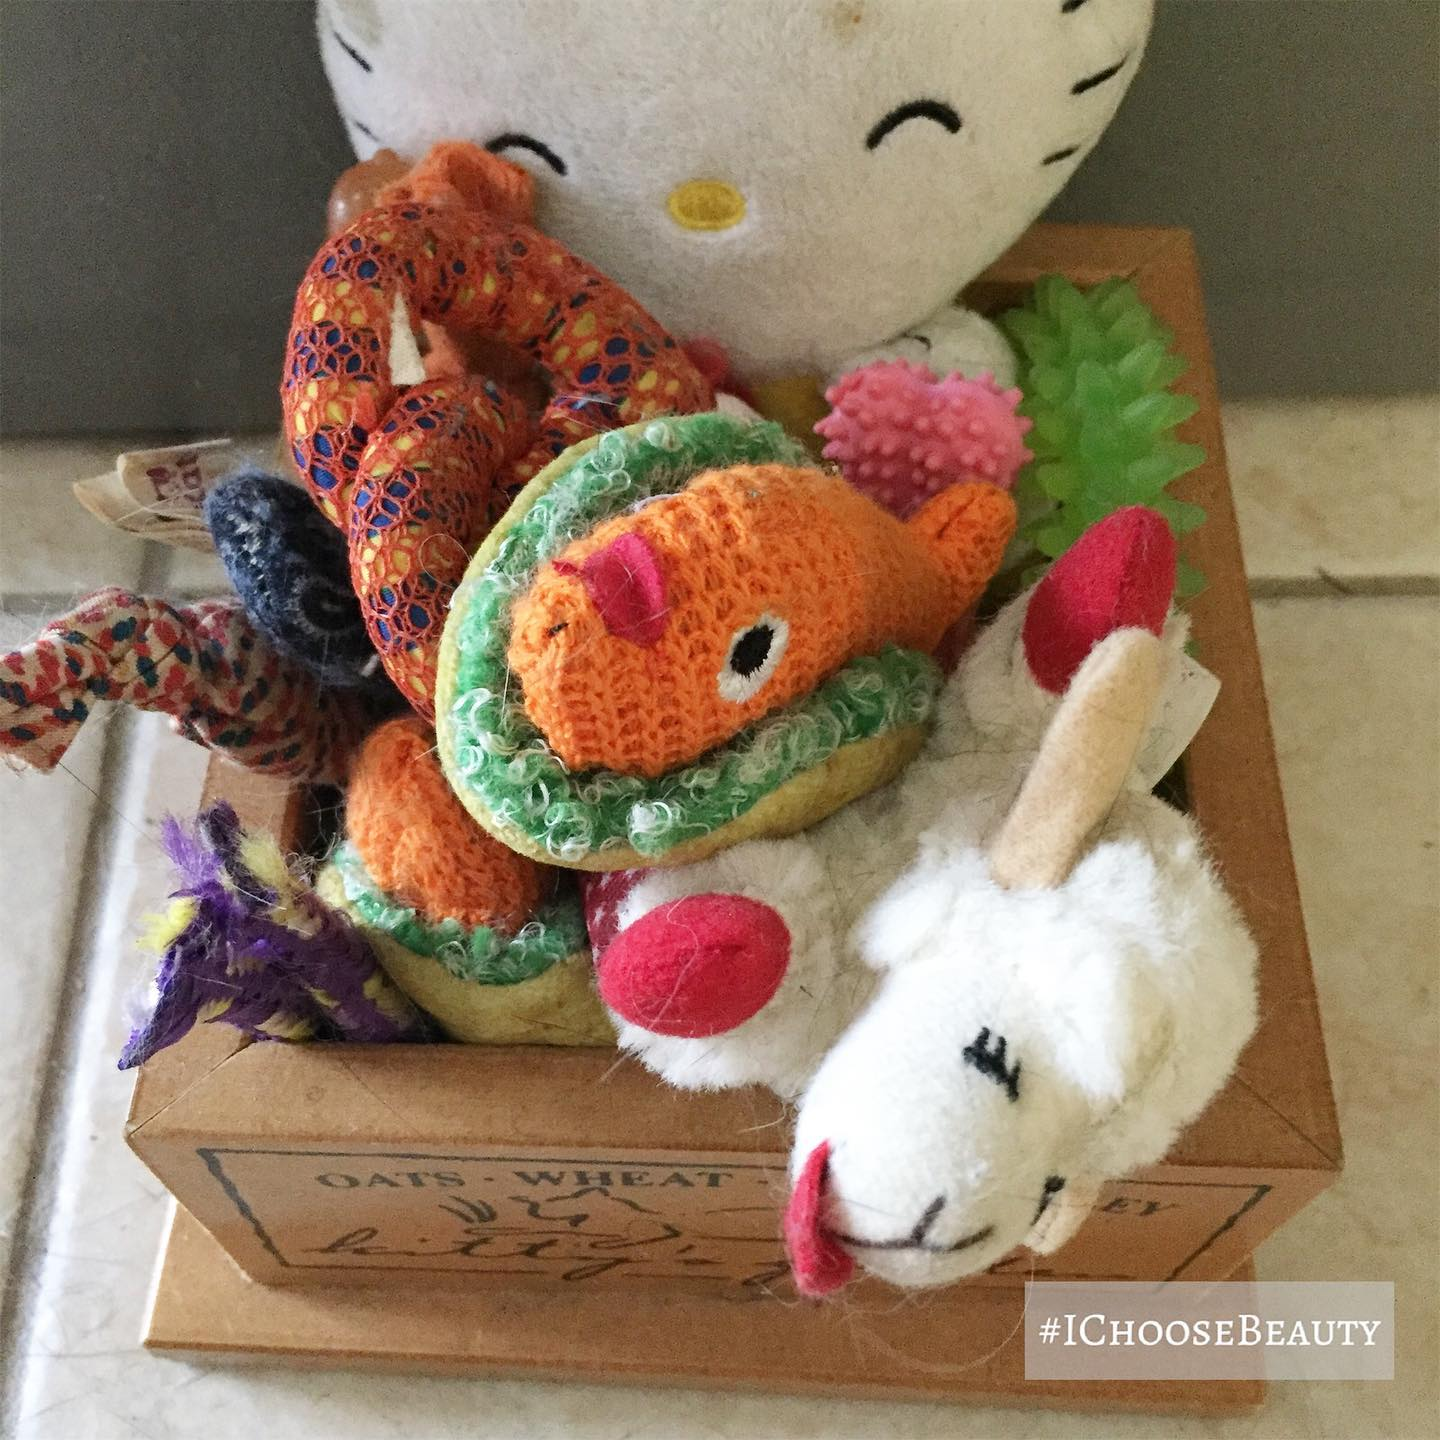 So many cute catnip toys! One of the rare moments they're all put away in their little box.  #ichoosebeauty Day 2476